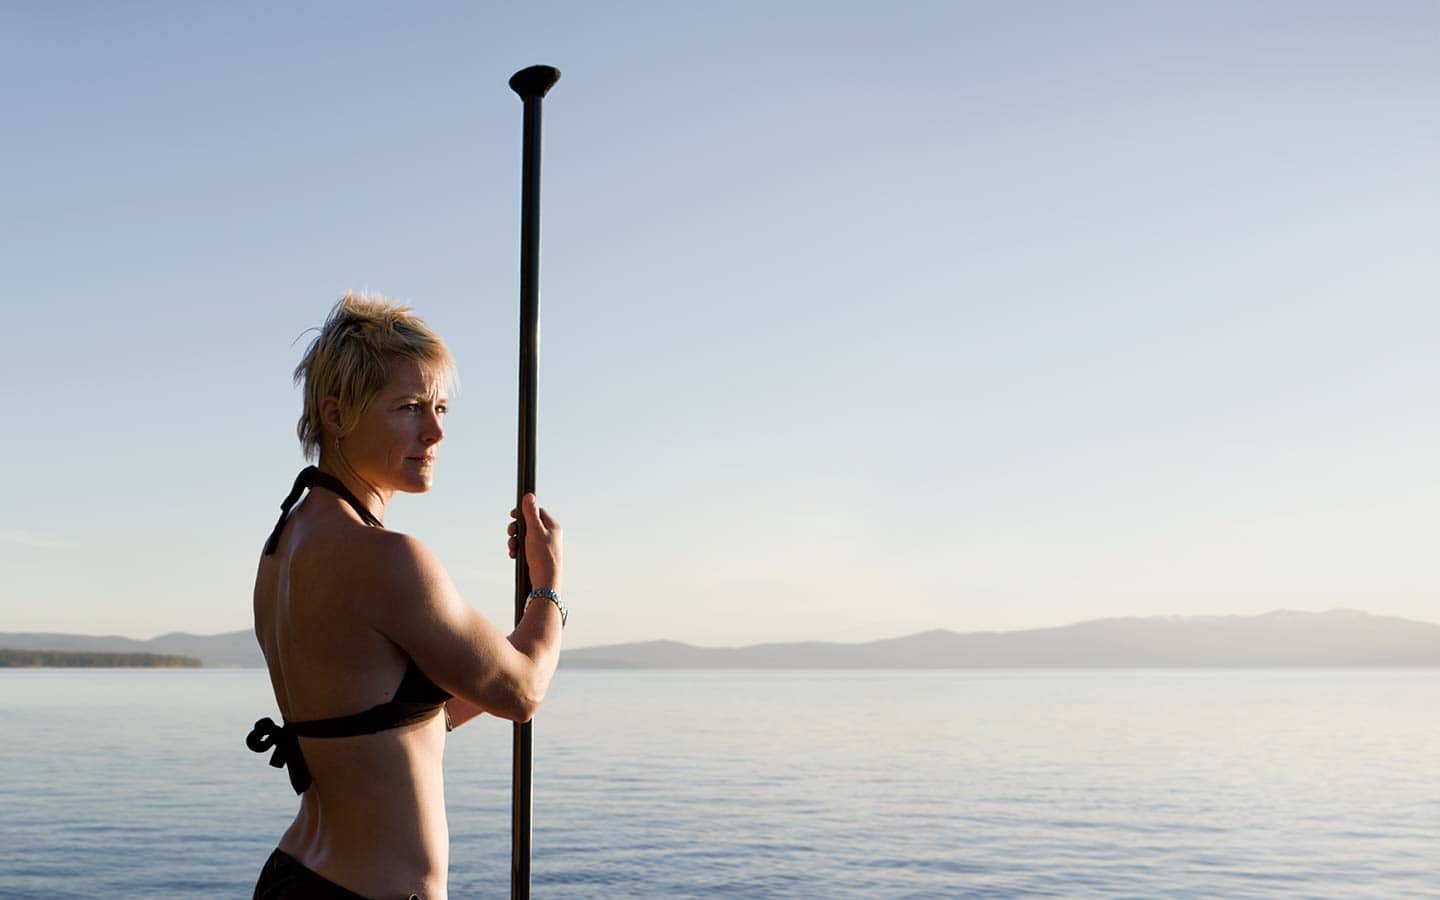 Image of Woman Holding Surf Kayaking Paddle Looking Off to Side